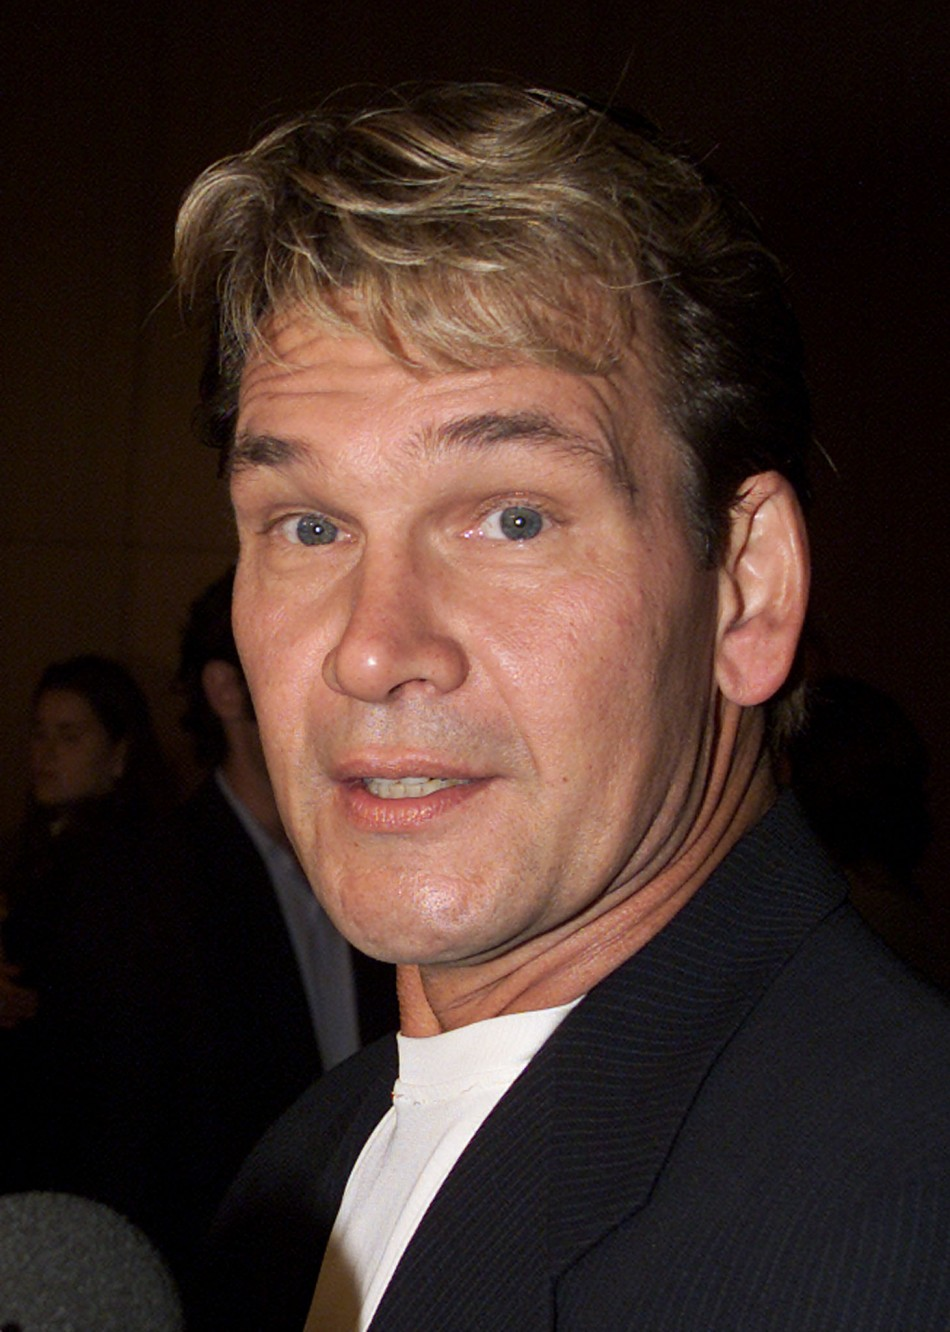 Patrick Swayze memorabilia auction to go ahead amid family ...